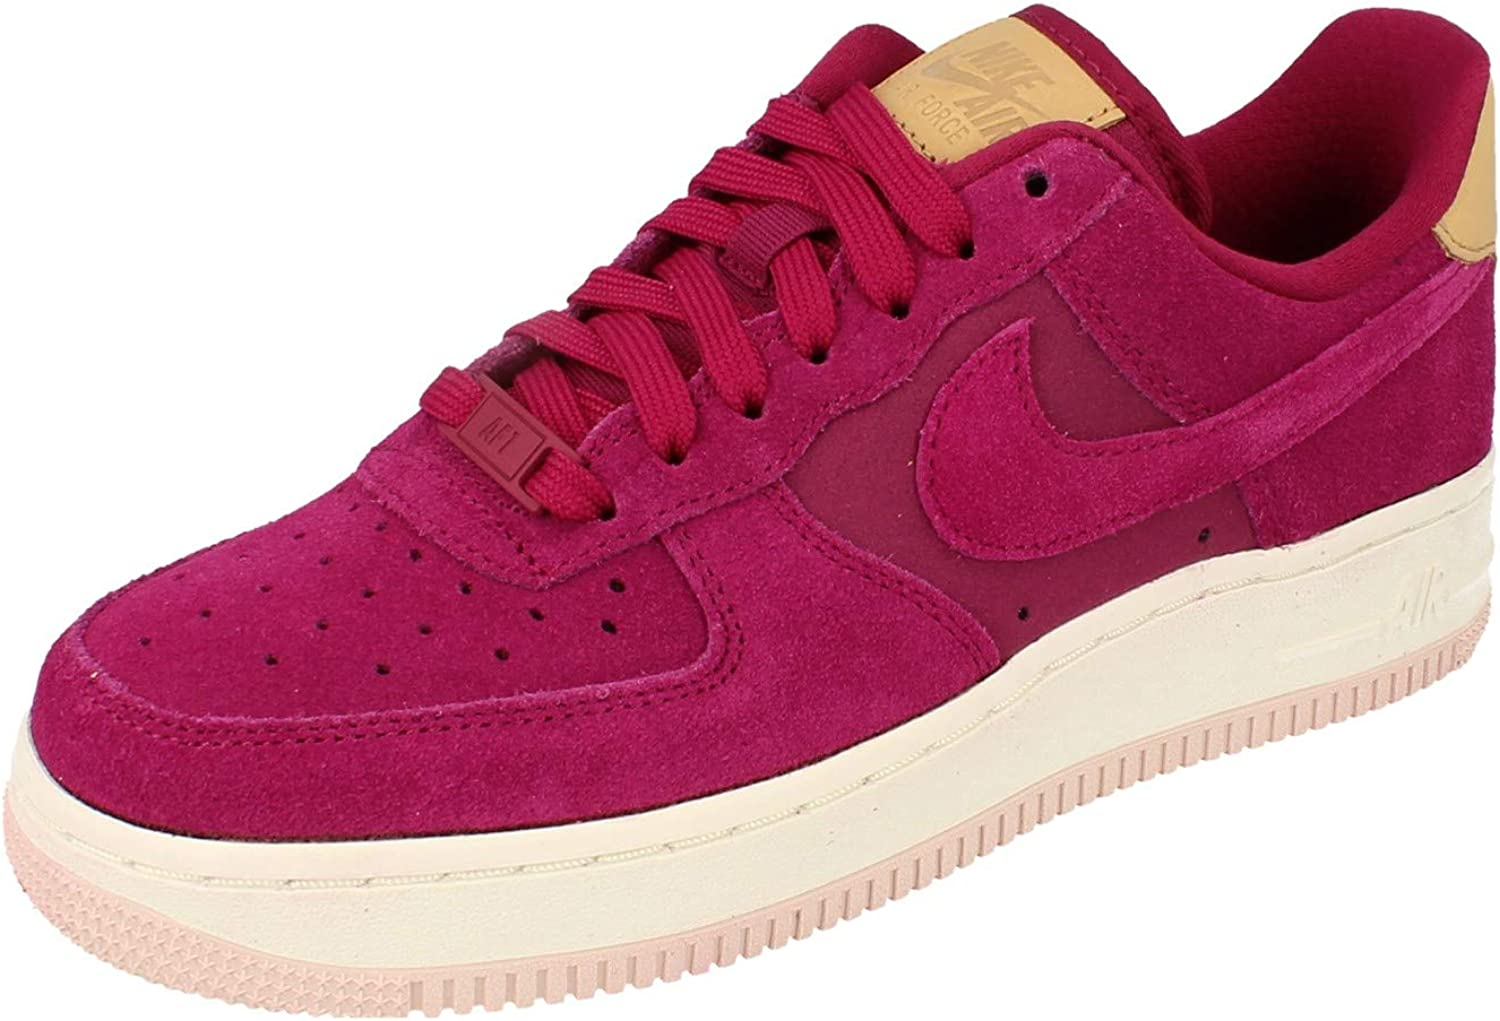 Tomate Indirecto accidente  Amazon.com   Nike Air Force 1 07 PRM Womens Trainers 896185 Sneakers Shoes    Fashion Sneakers